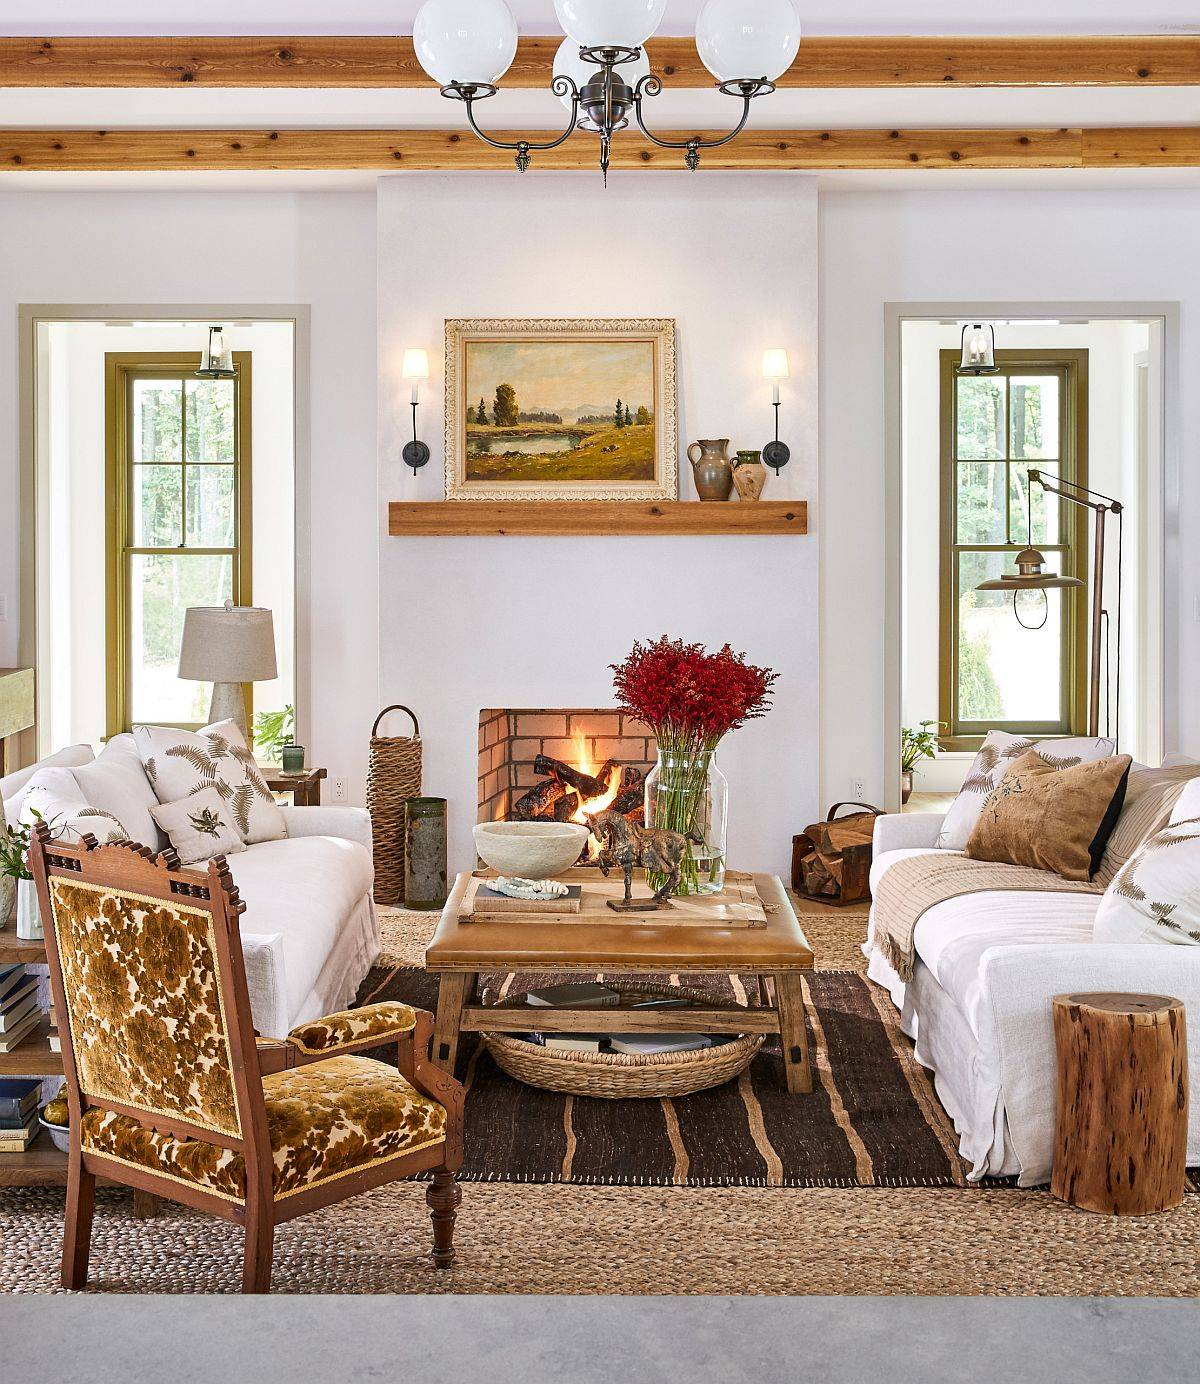 Modern-farmhouse-style-living-room-in-white-with-fireplace-wooden-beams-and-cozy-decor-40605